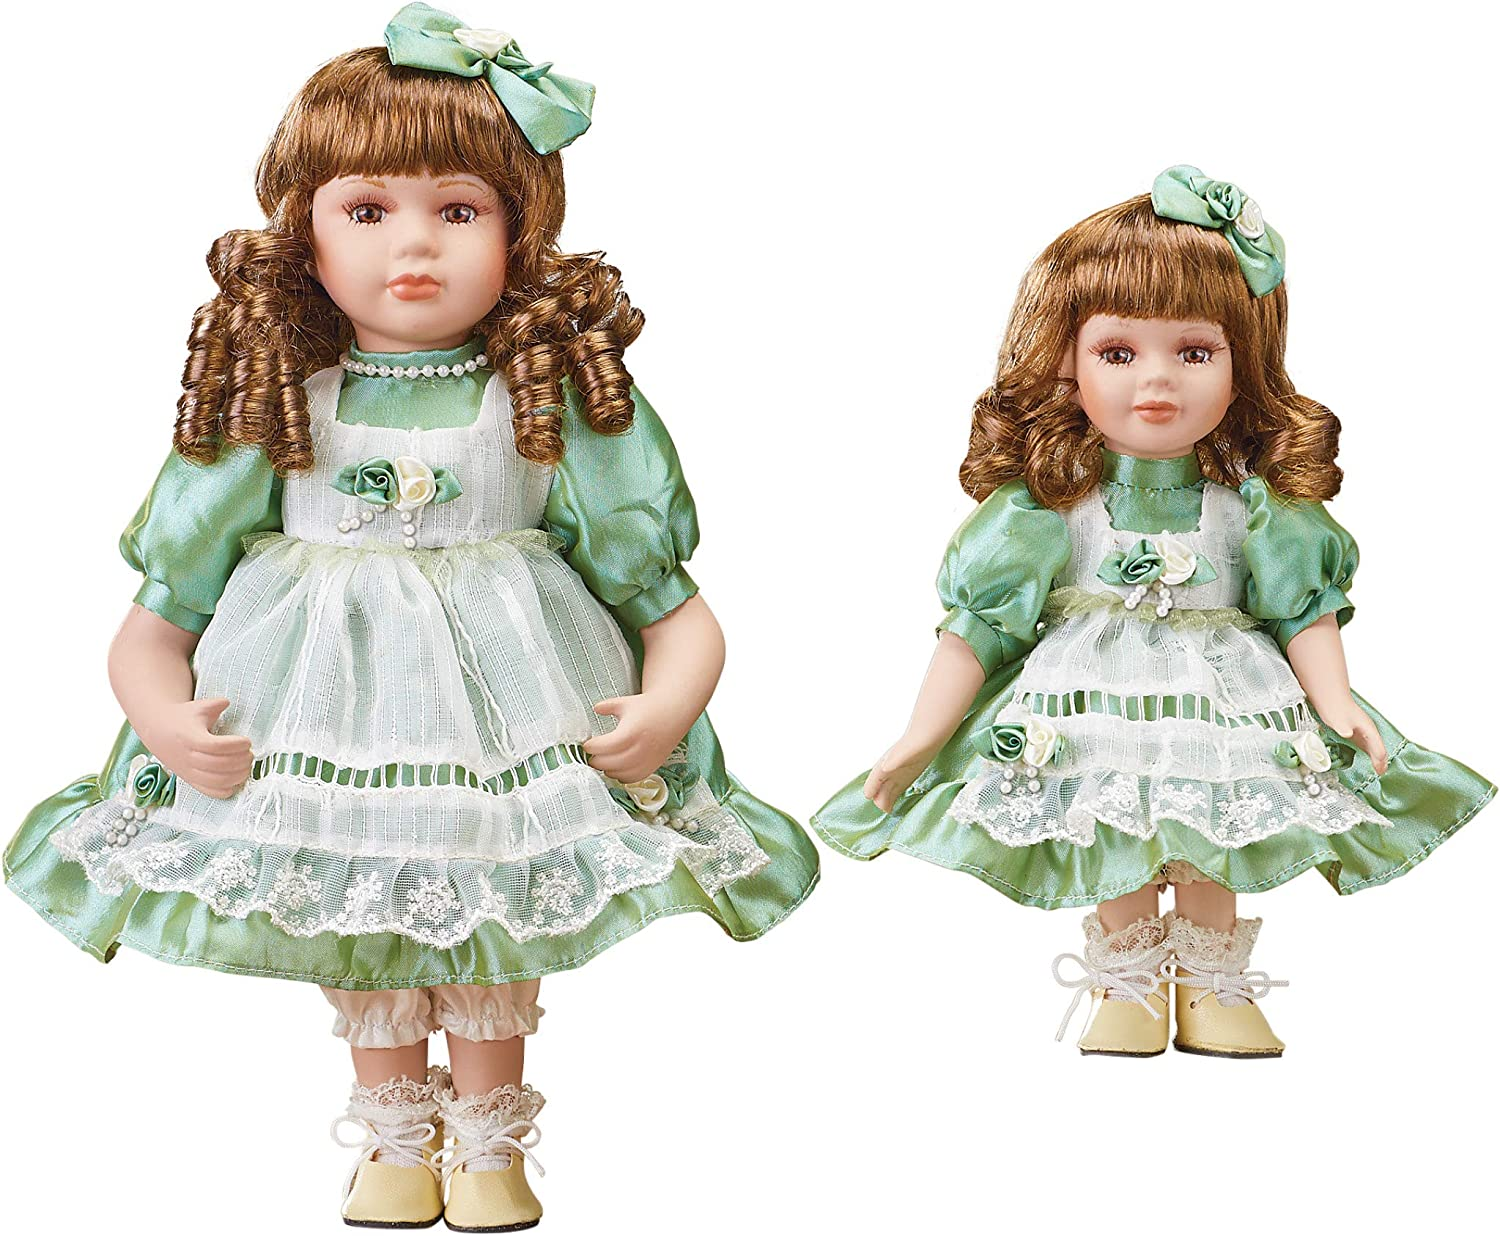 Big and safety Little Sister Porcelain Dolls Bows Set Ranking TOP7 with - Curls